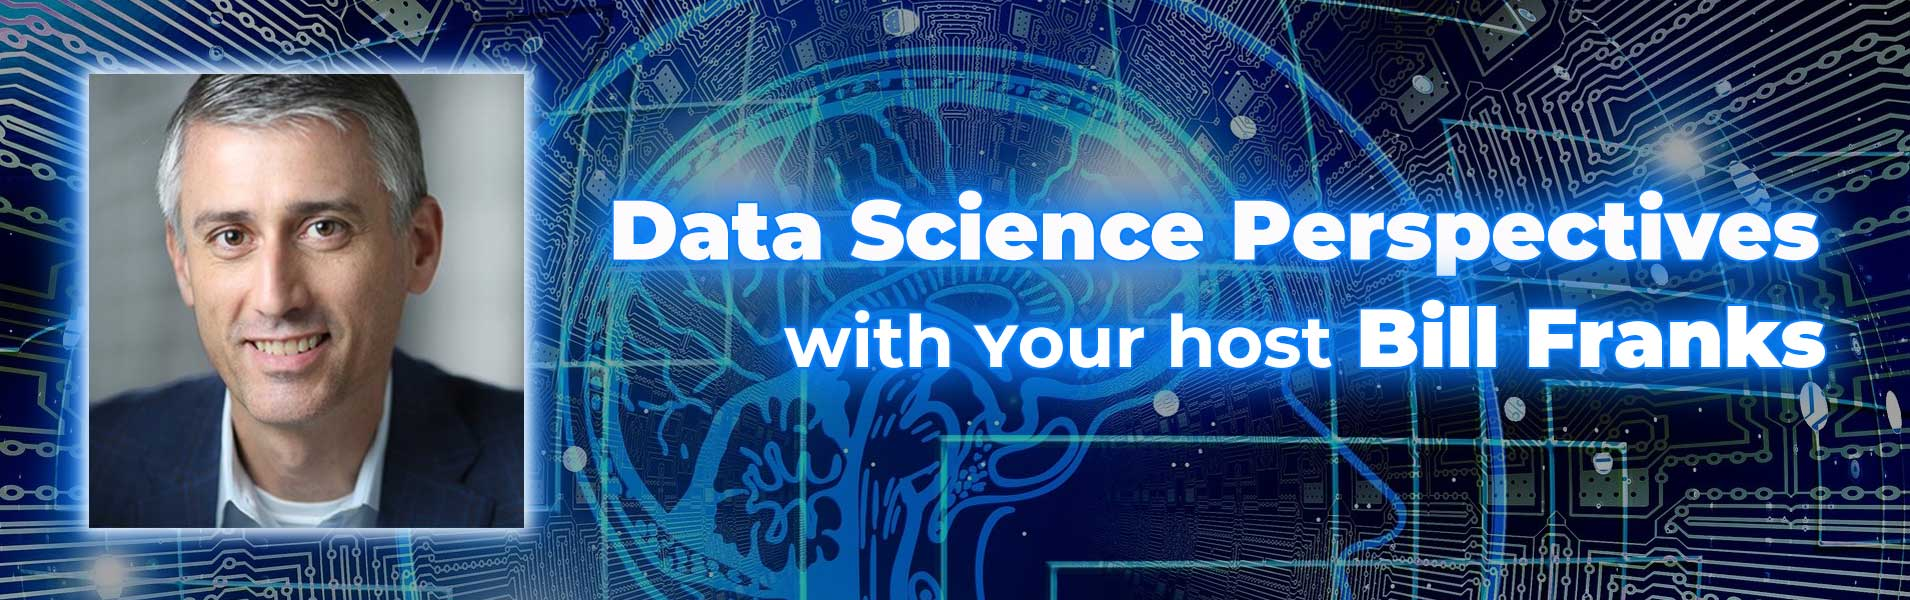 Data Science Perspectives Webcast Series